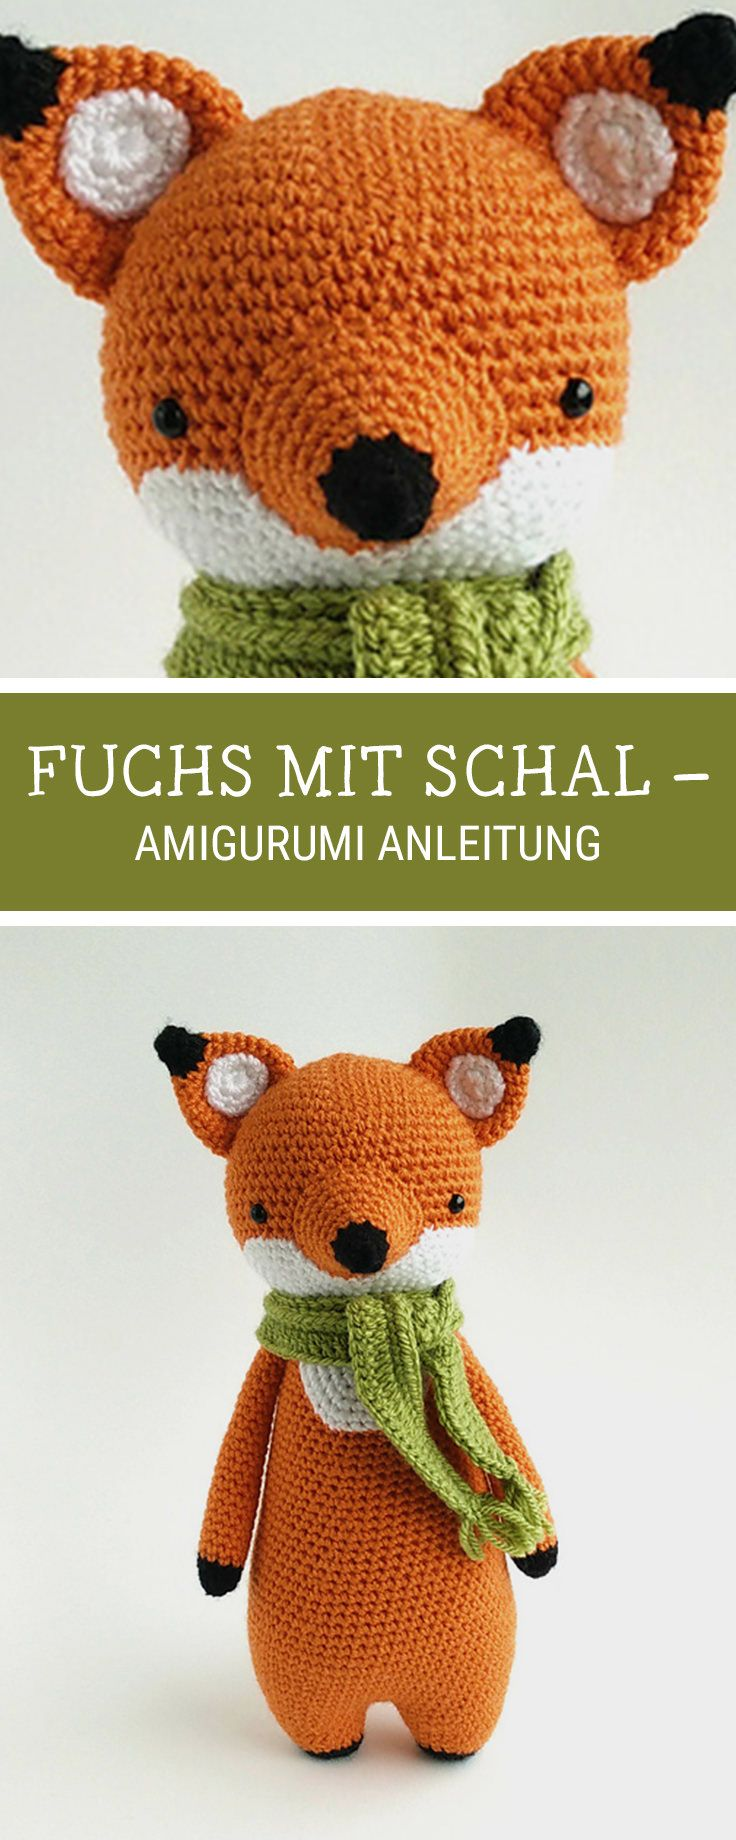 Amigurumi häkeln: Fuchs mit Schal häkeln / amigurumi pattern for a cute fox with scarf made by Little Bear Crocheted via DaWanda.com #amigurumimodelleri